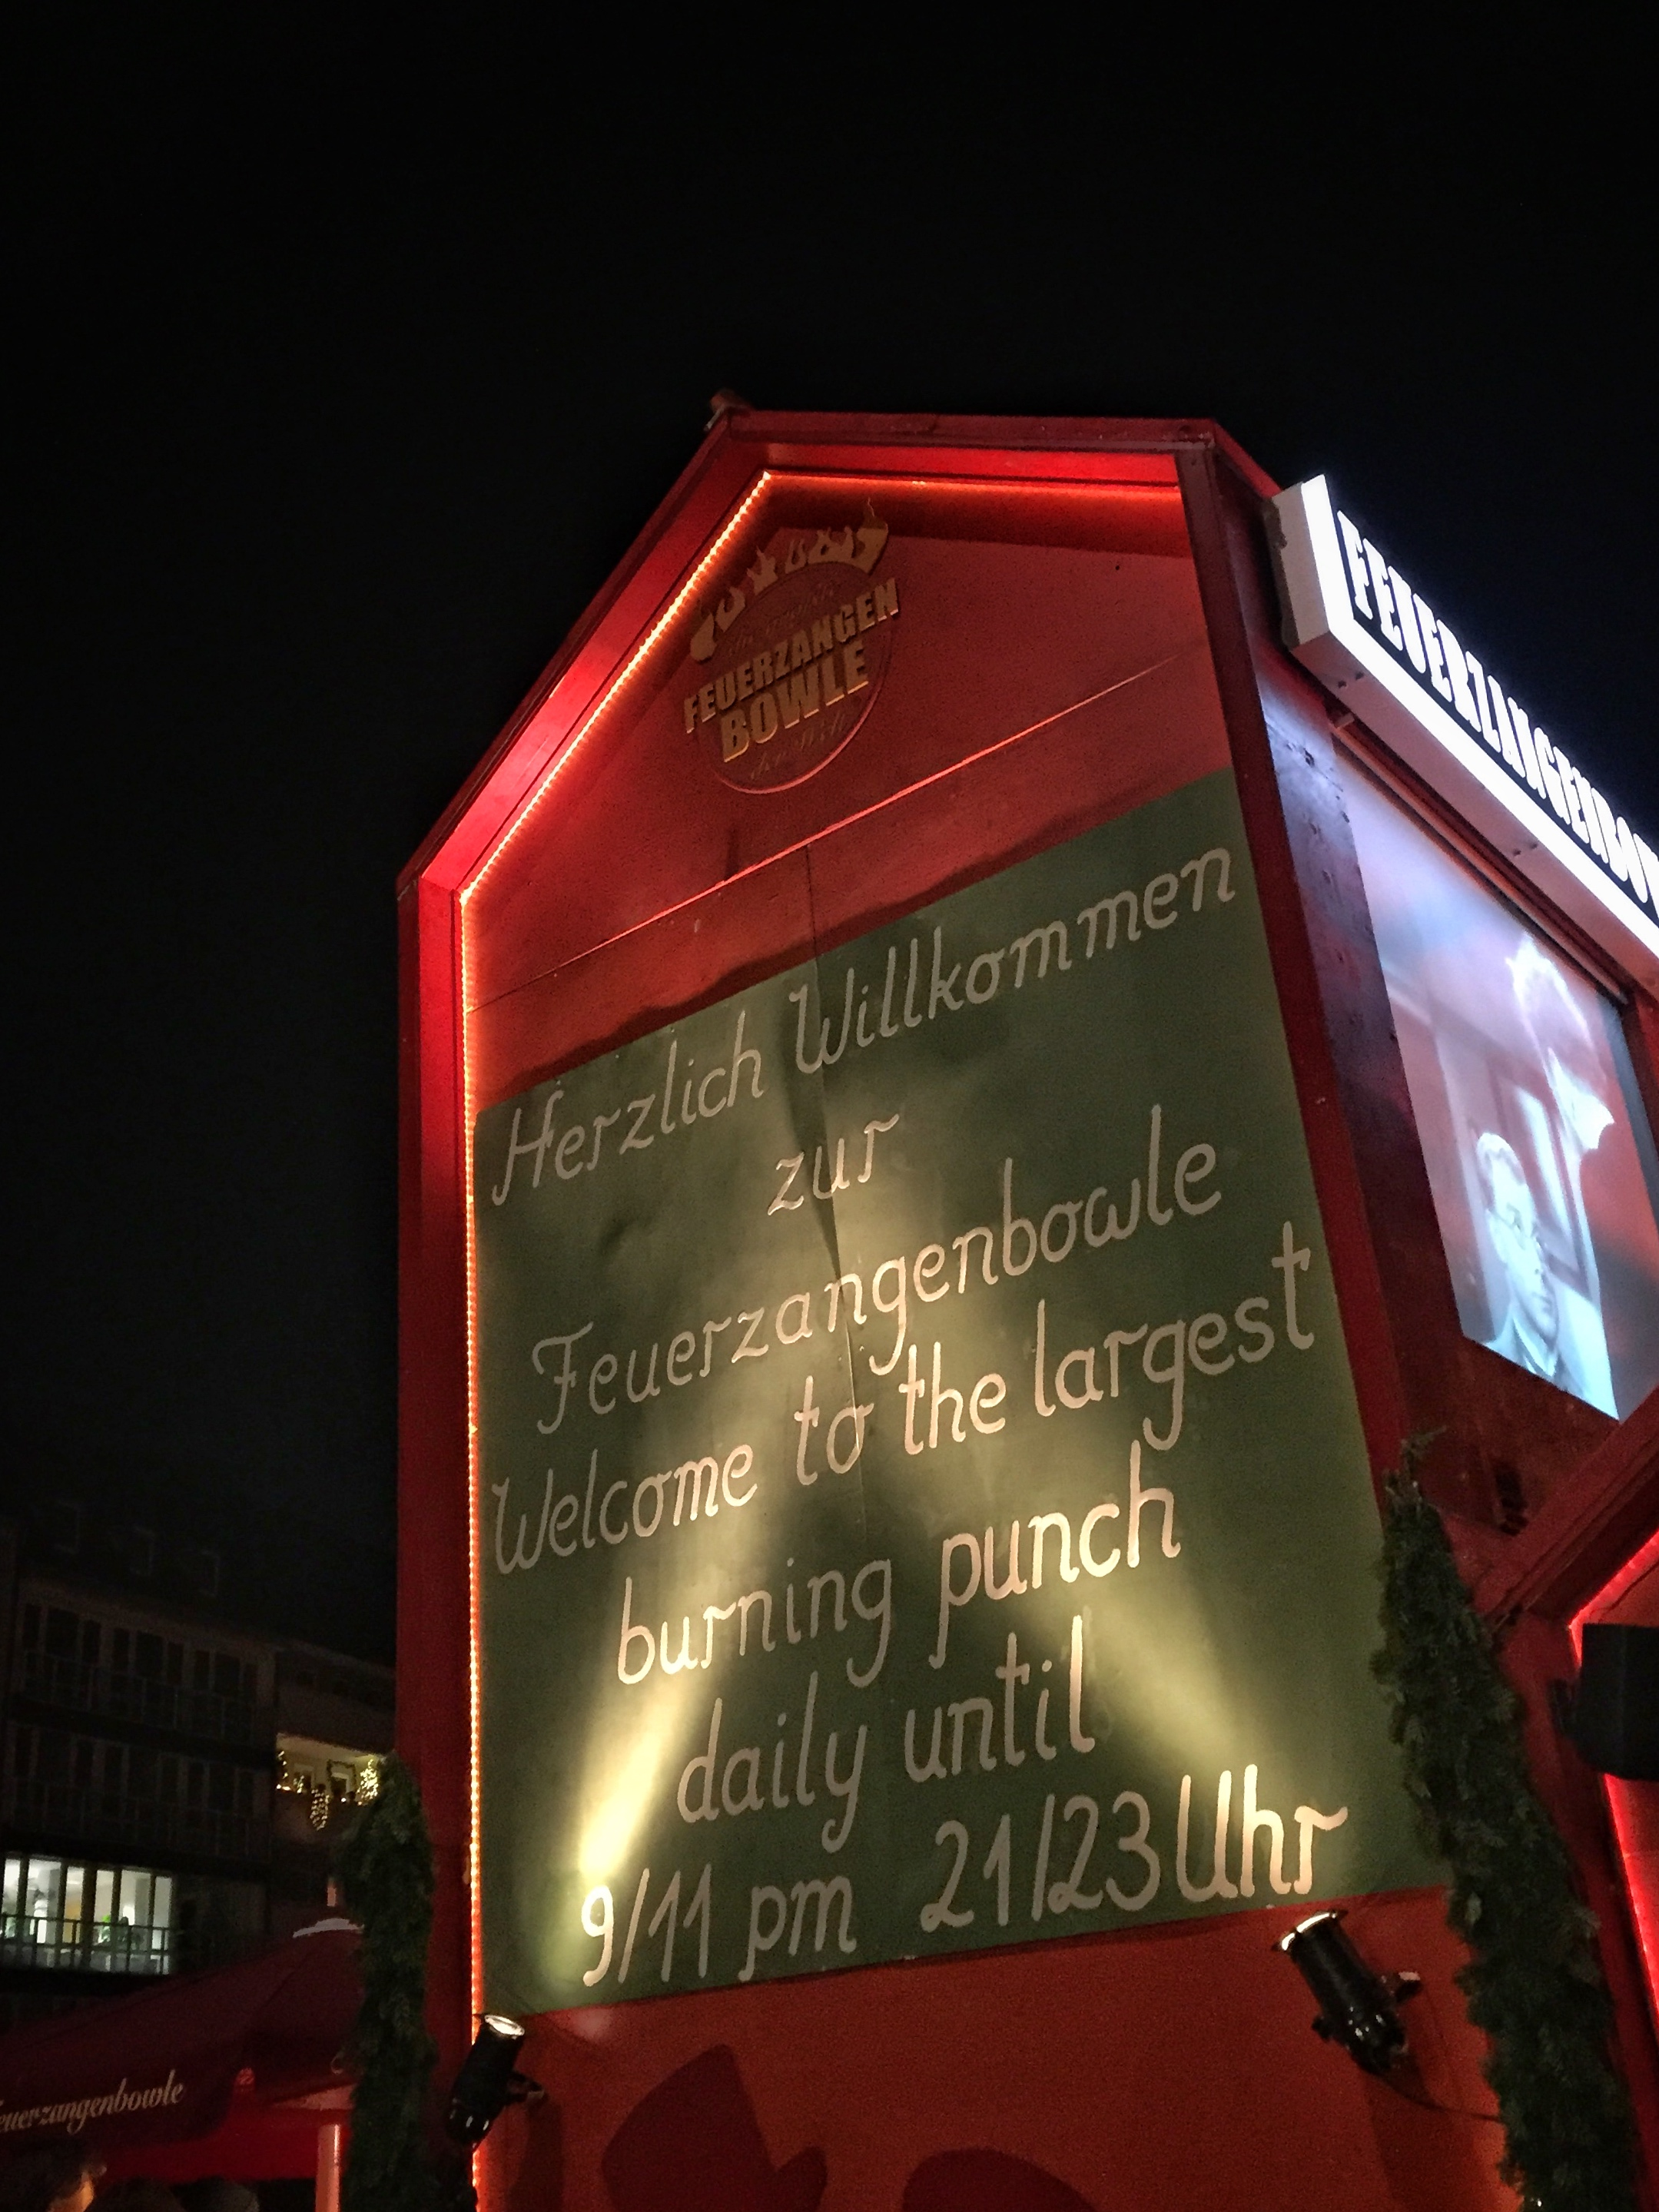 the wildly popular feuerzangenbowle ('burning punch')